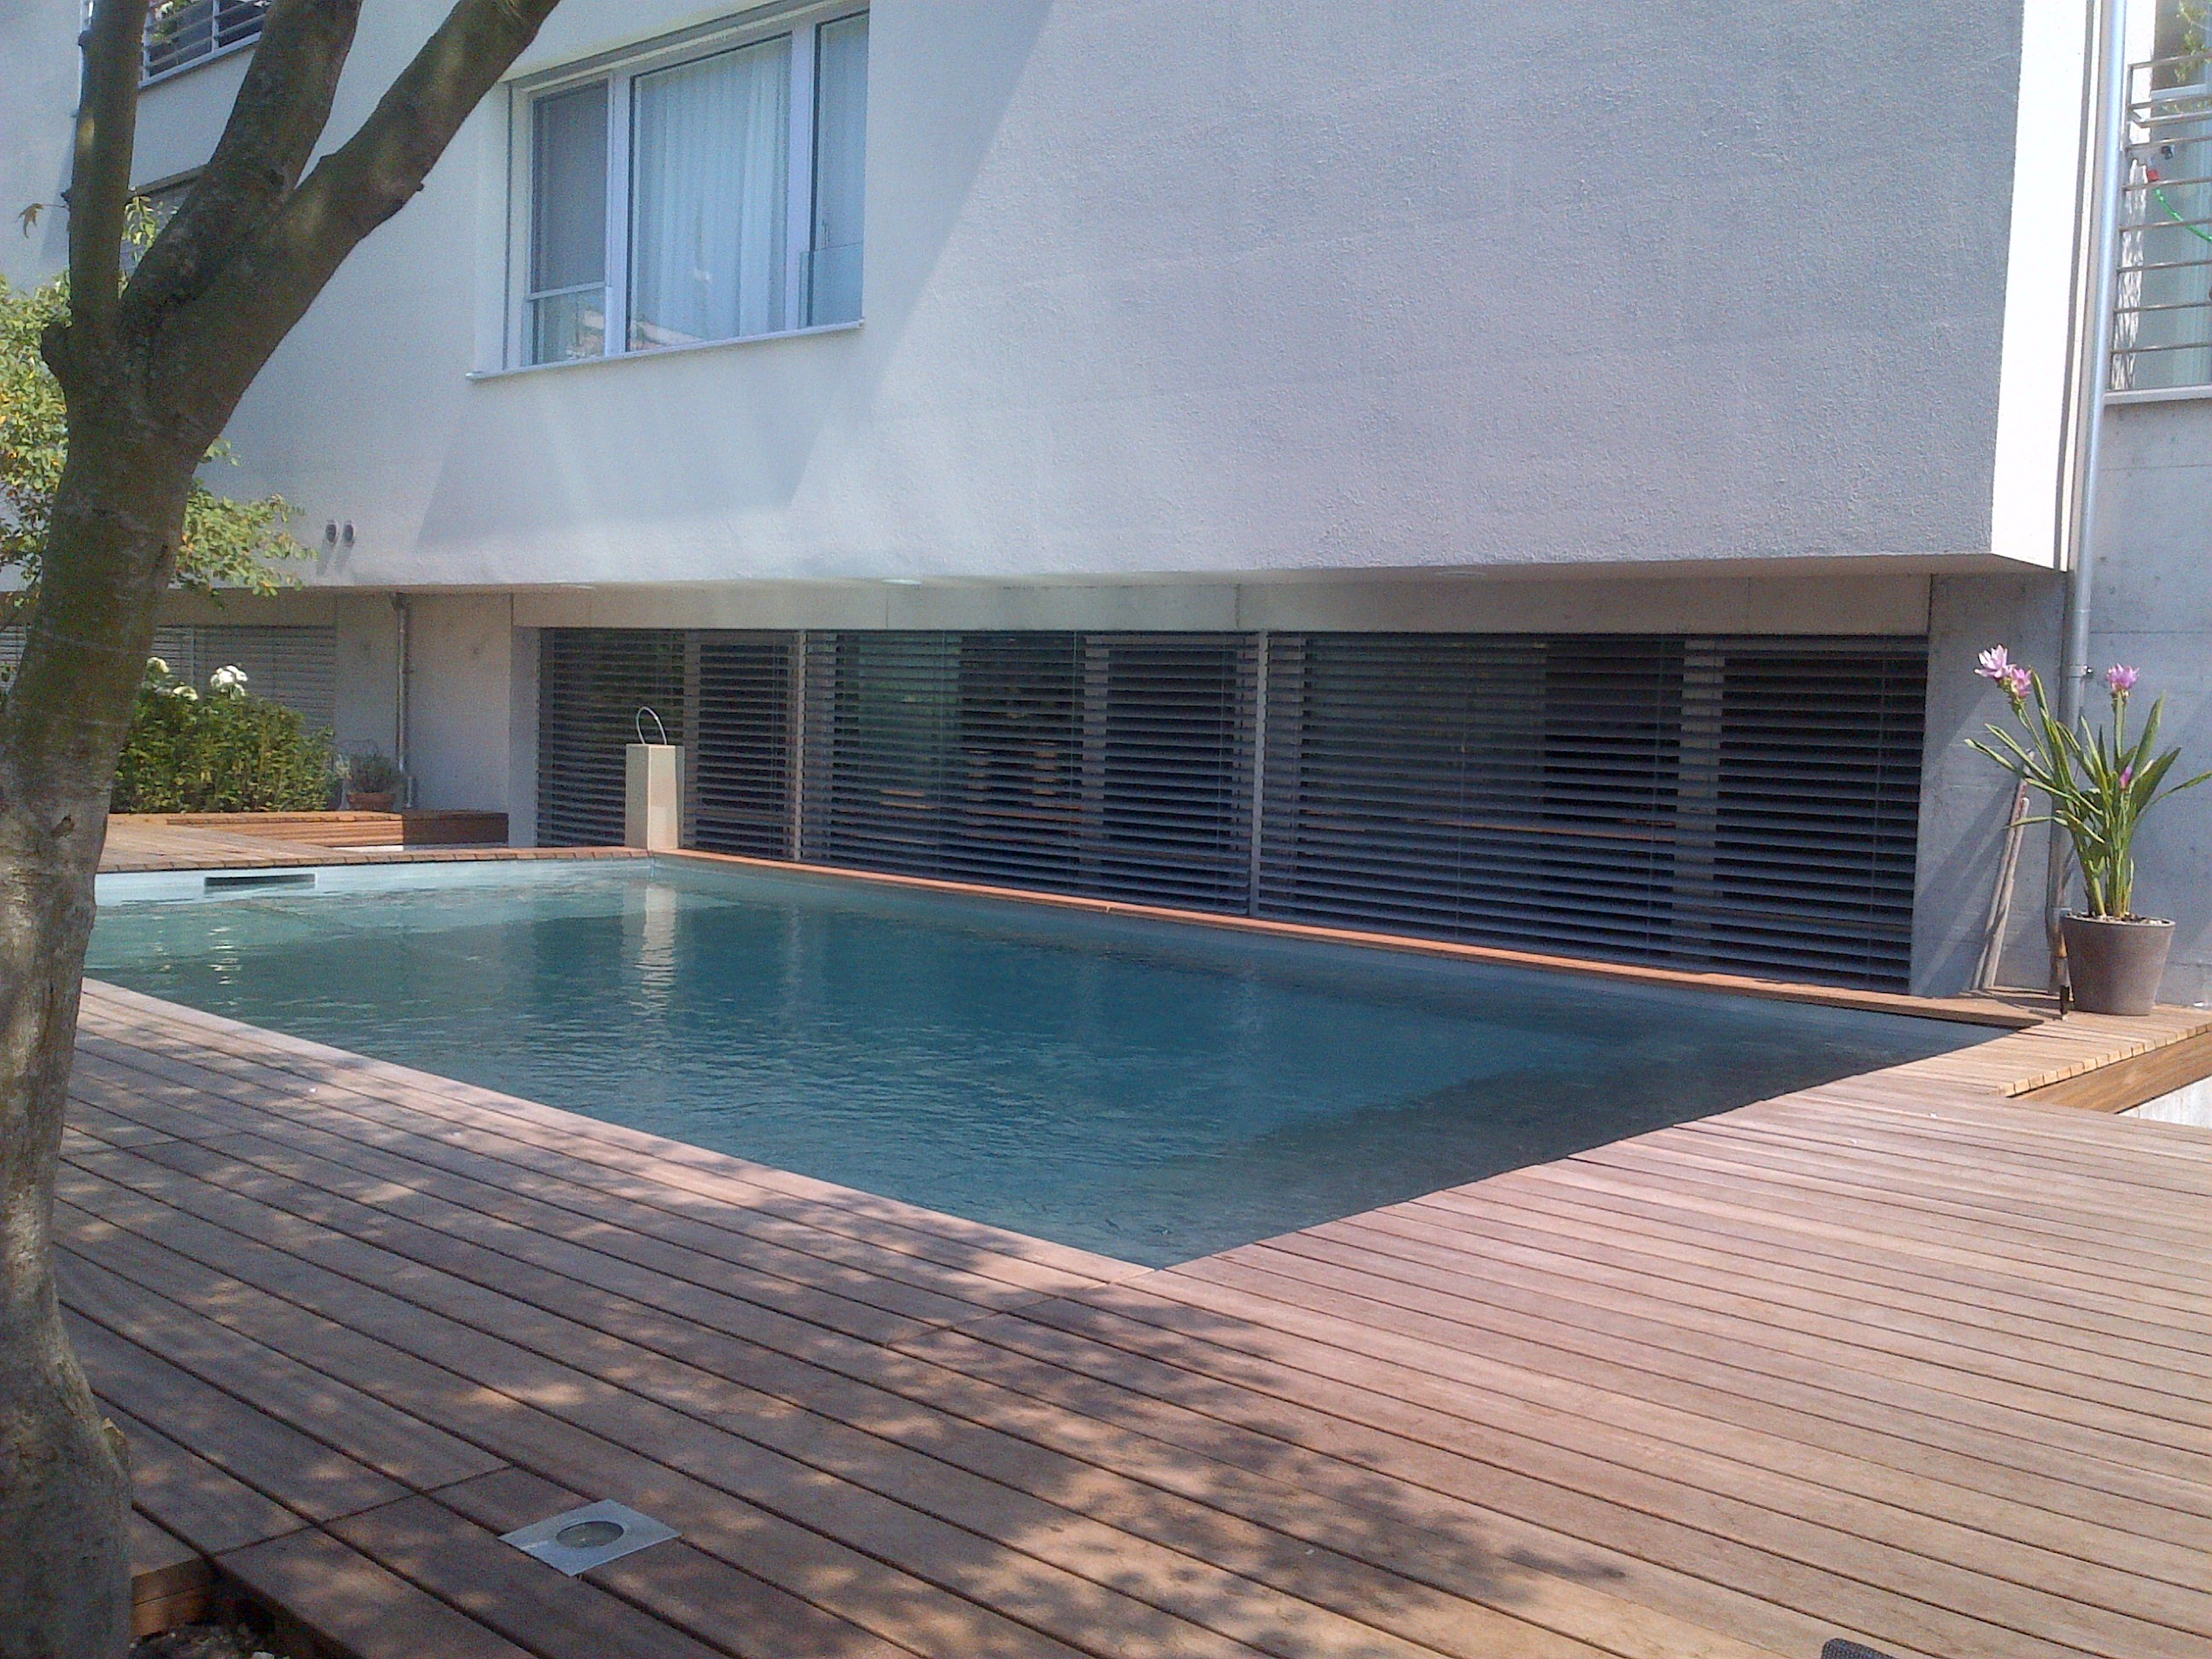 Chrom line edelstahl pool chromstahl pool swimmingpool - Swimmingpool edelstahl ...